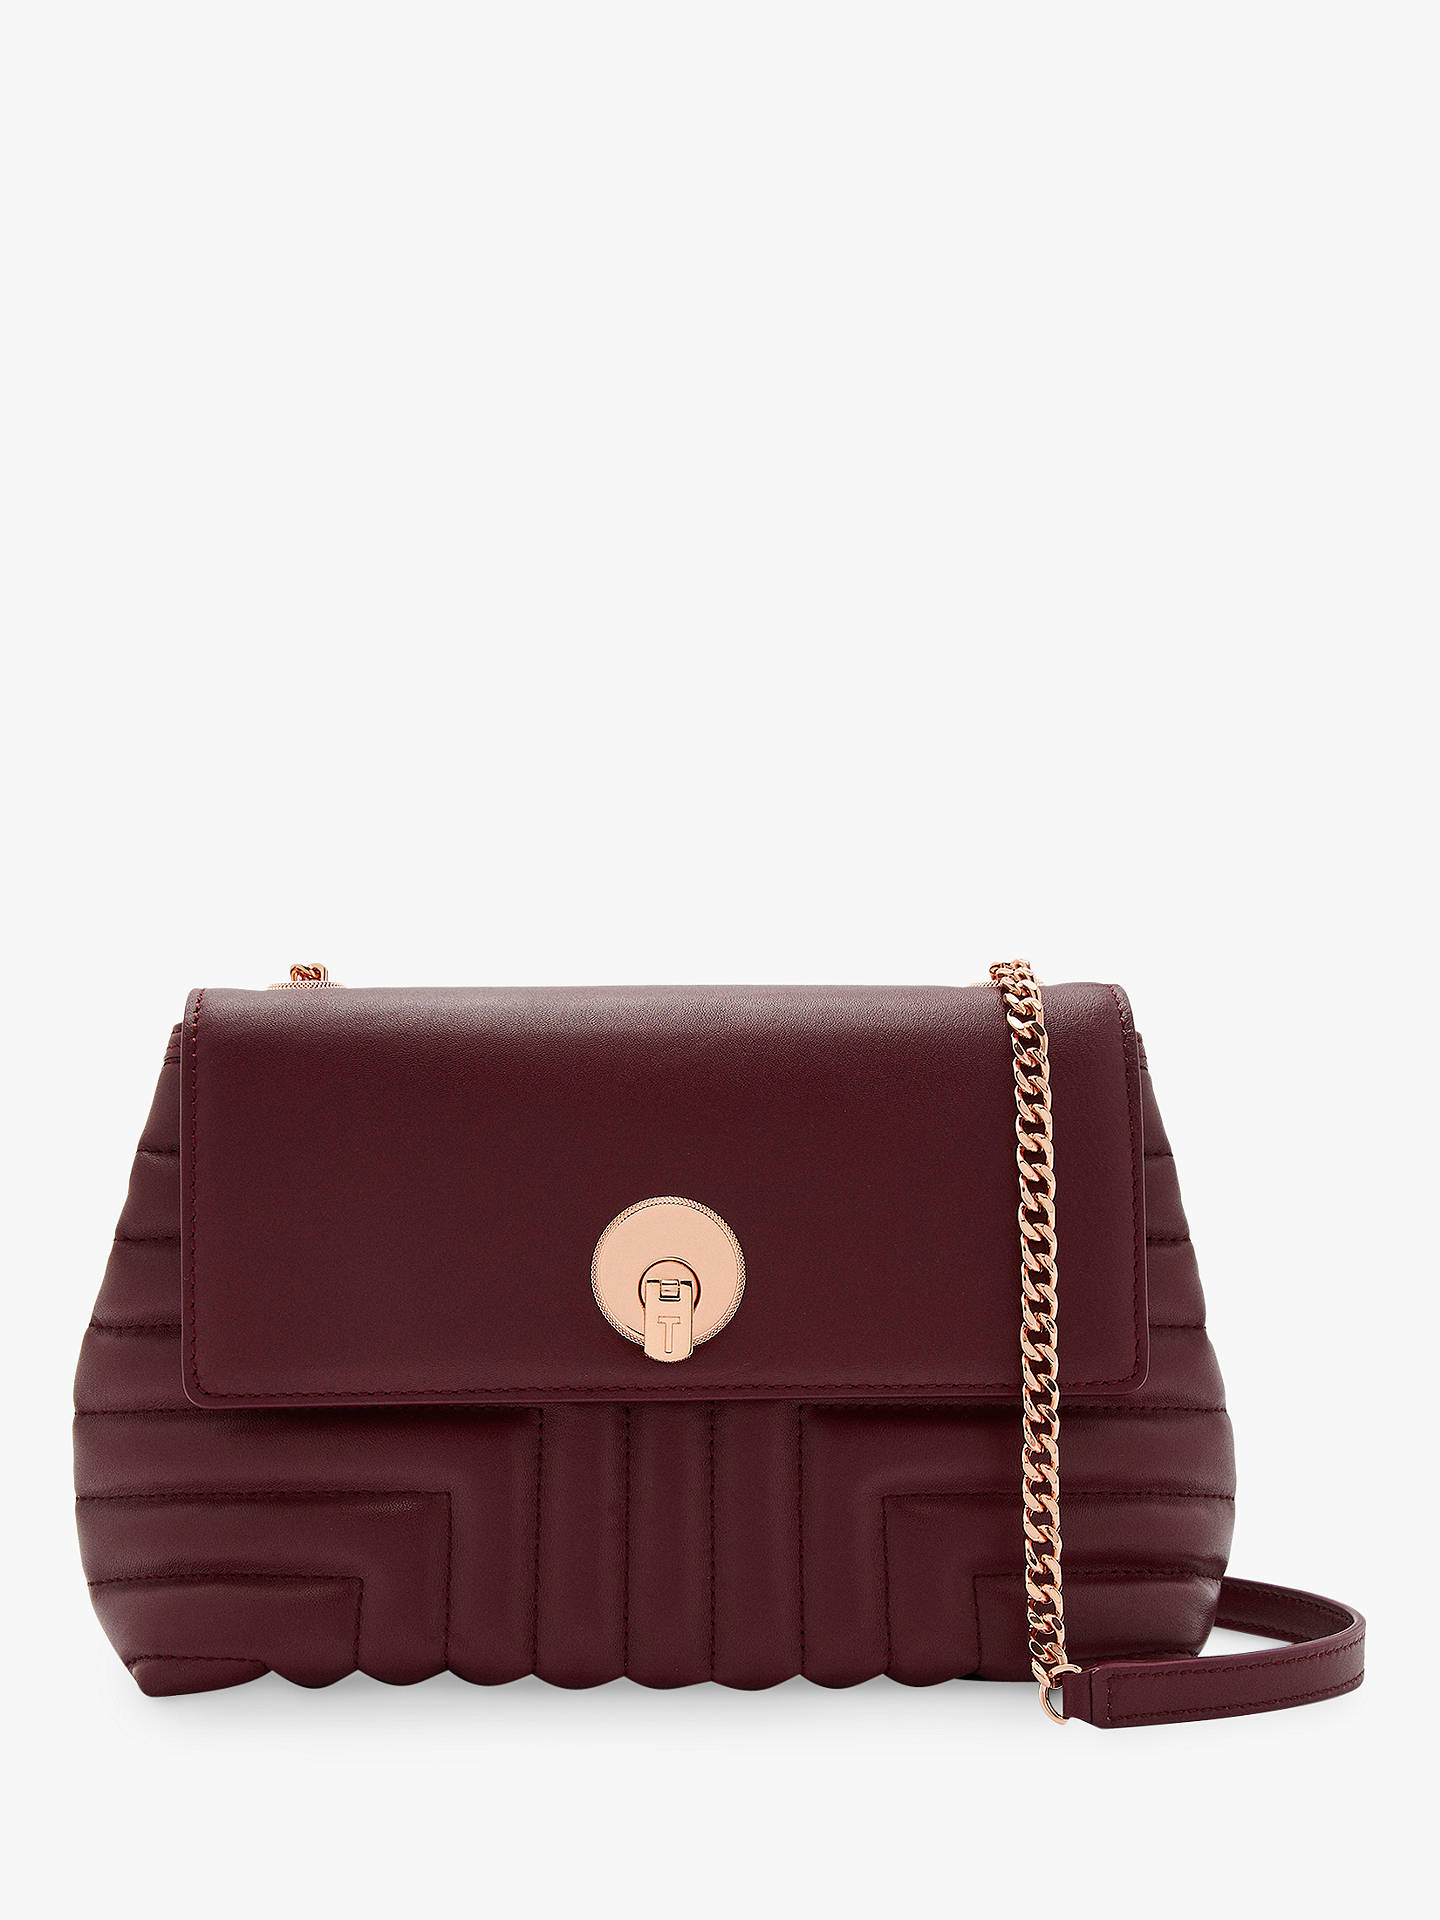 d6672e1c9 Ted Baker Ssusiee Qulited Leather Cross Body Bag at John Lewis ...